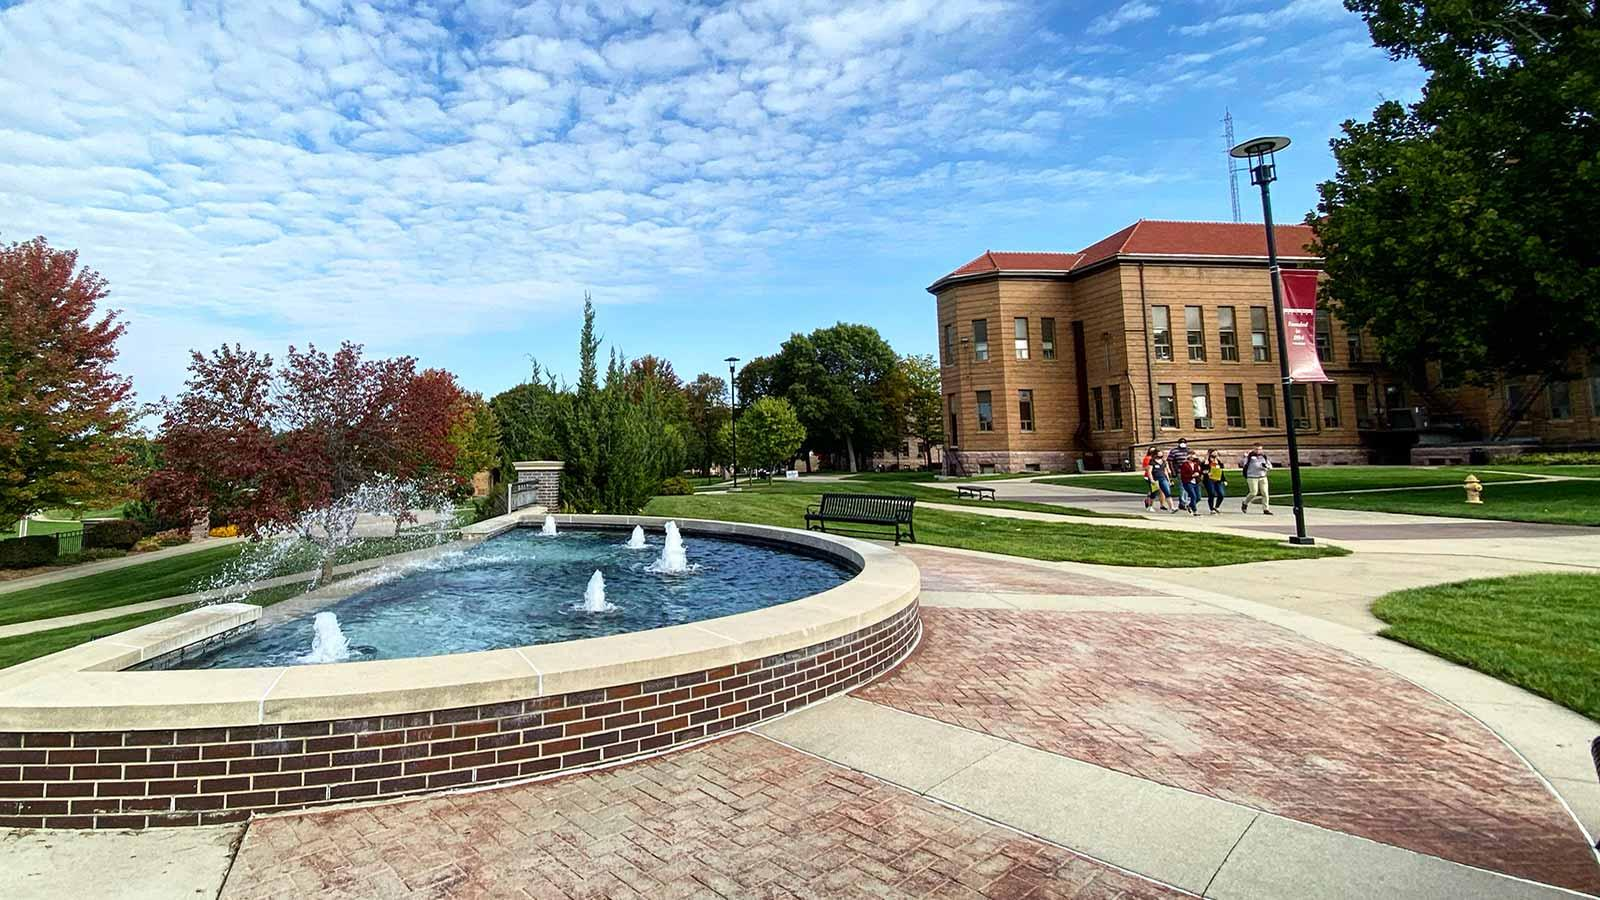 A group of visitors walks down the sidewalk in front of the fountain at Morningside